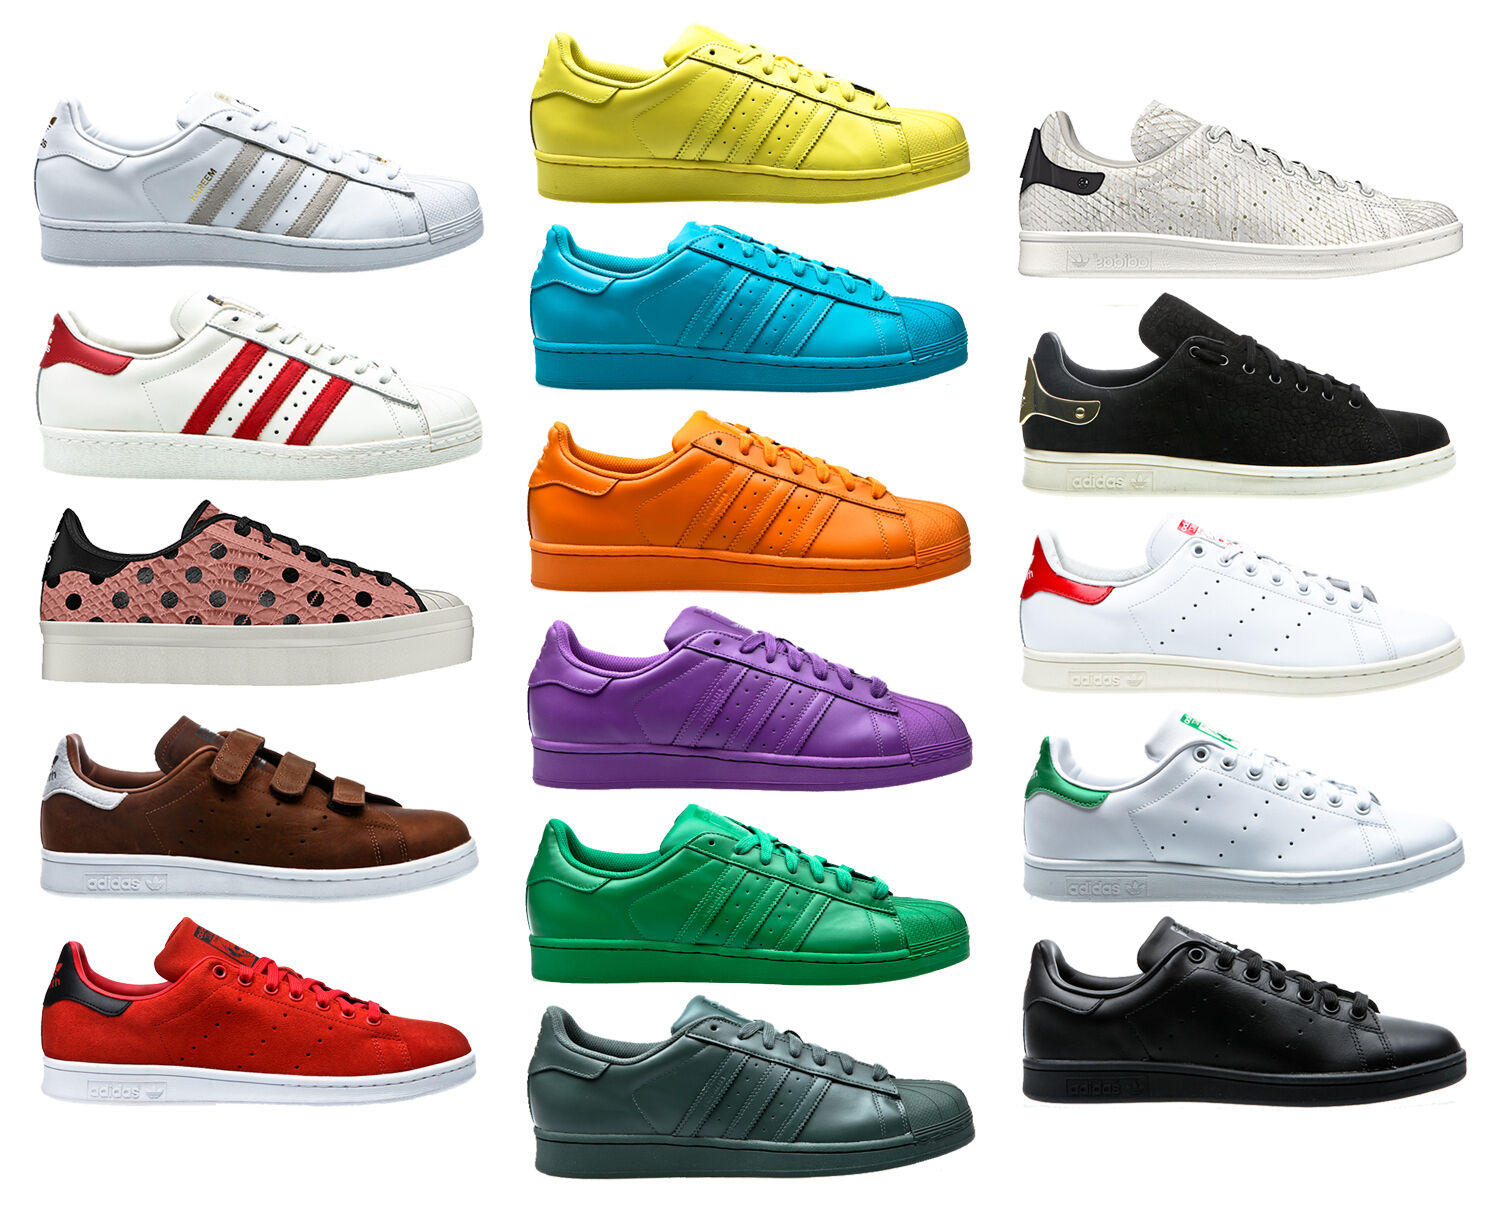 Adidas LOS Superstar Supercolor PAQUETE DE LOS Adidas AÑOS 80 DLX Stan Smith 00f451